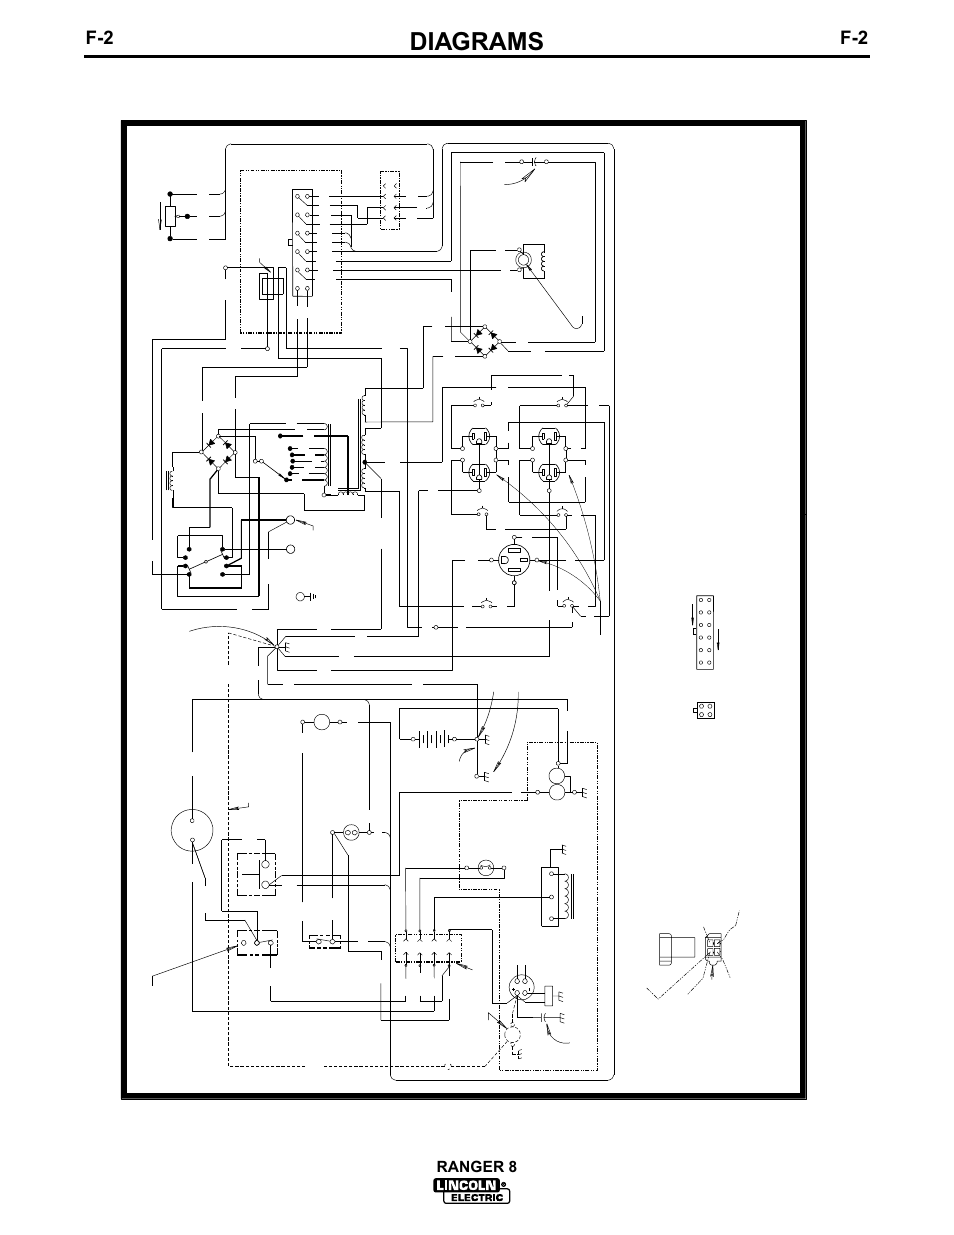 Lincoln Ranger 8 Wiring Diagram Services 95 Town Car Stereo Trusted Diagrams Electrical Symbols Per E1537 Electric Rh Manualsdir Com 1965